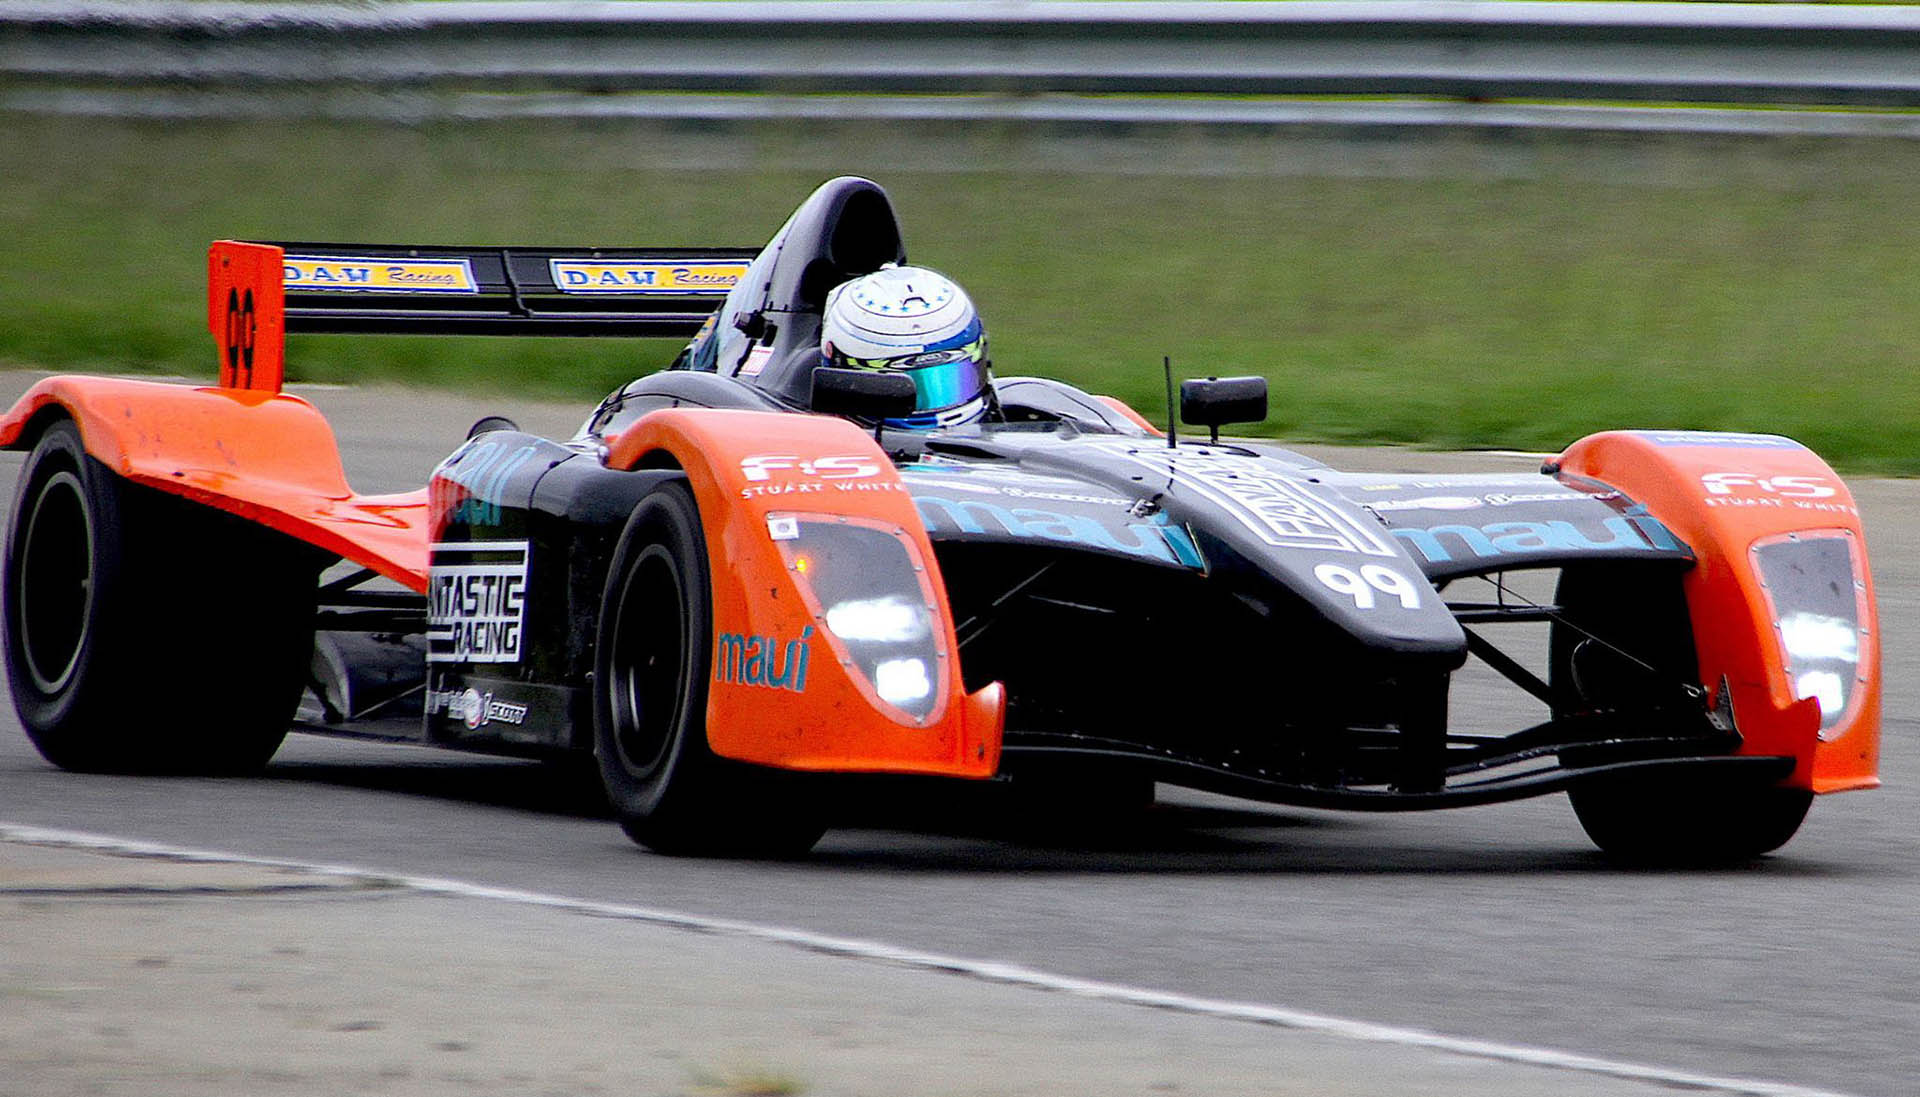 The race-winning Fantastic Racing Maui Formula Renault